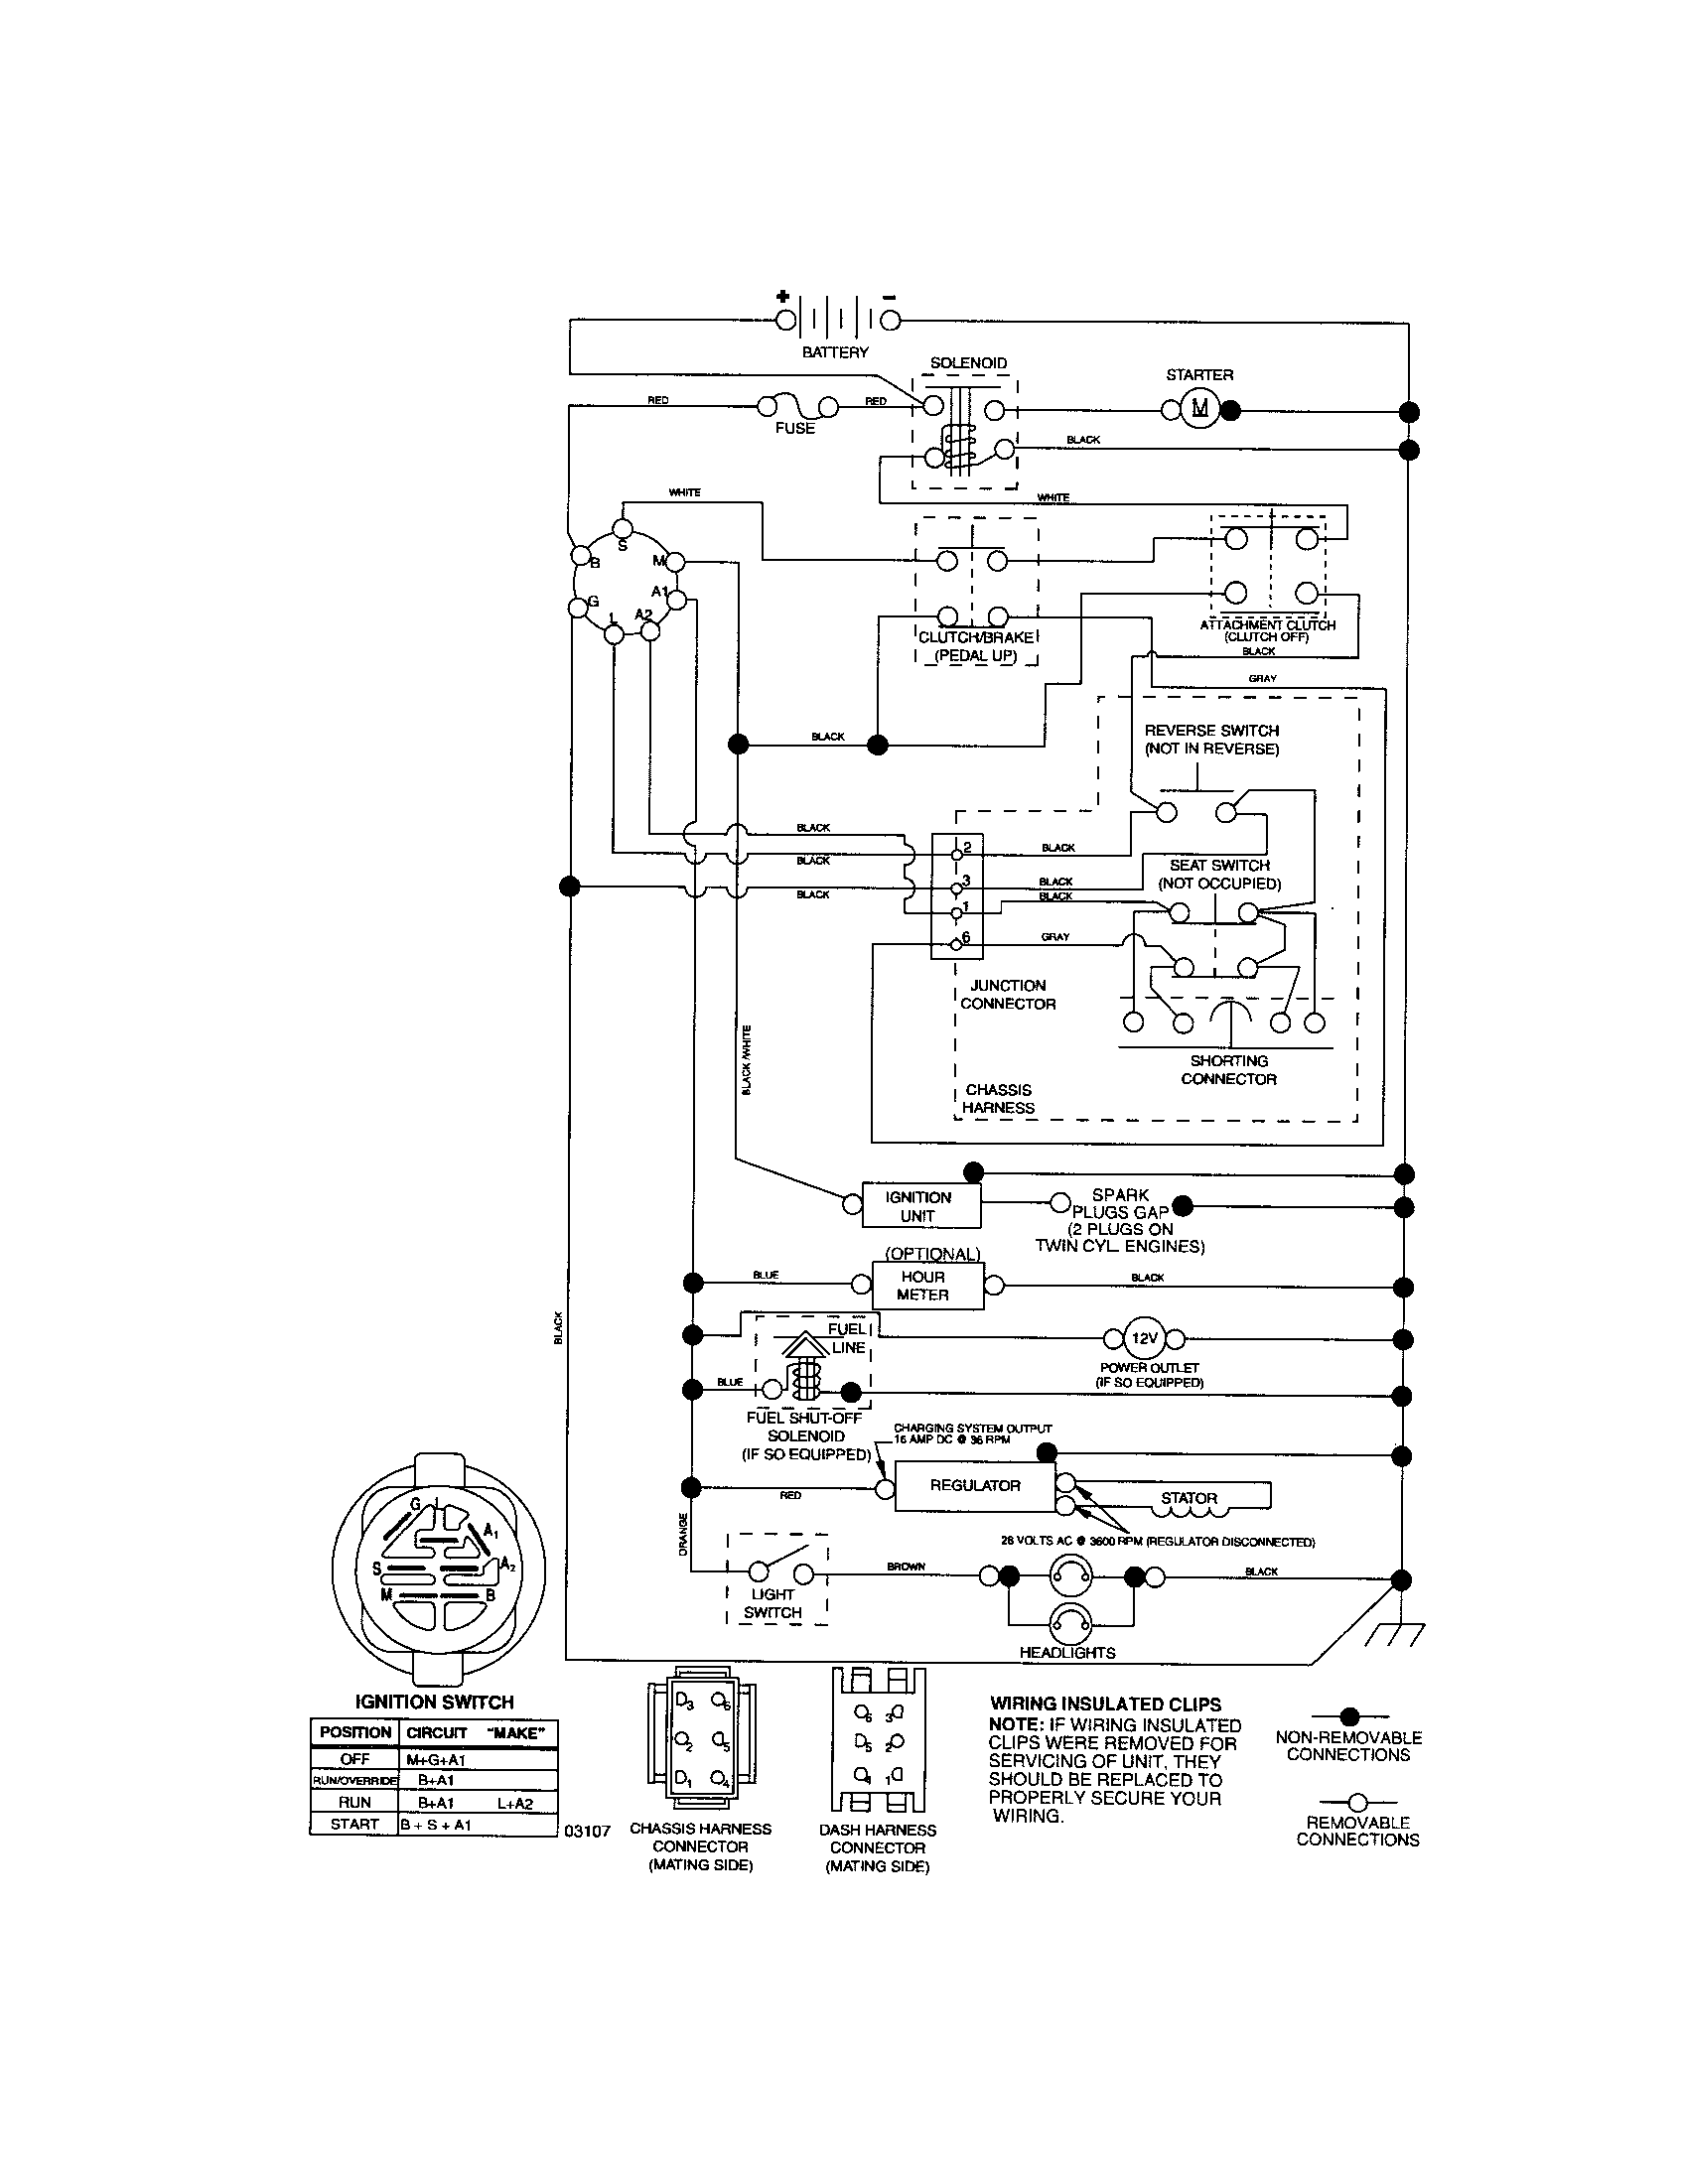 craftsman riding mower electrical diagram wiring diagram craftsman rh pinterest com craftsman wiring diagram 917.273080 Craftsman Mower Wiring Diagram